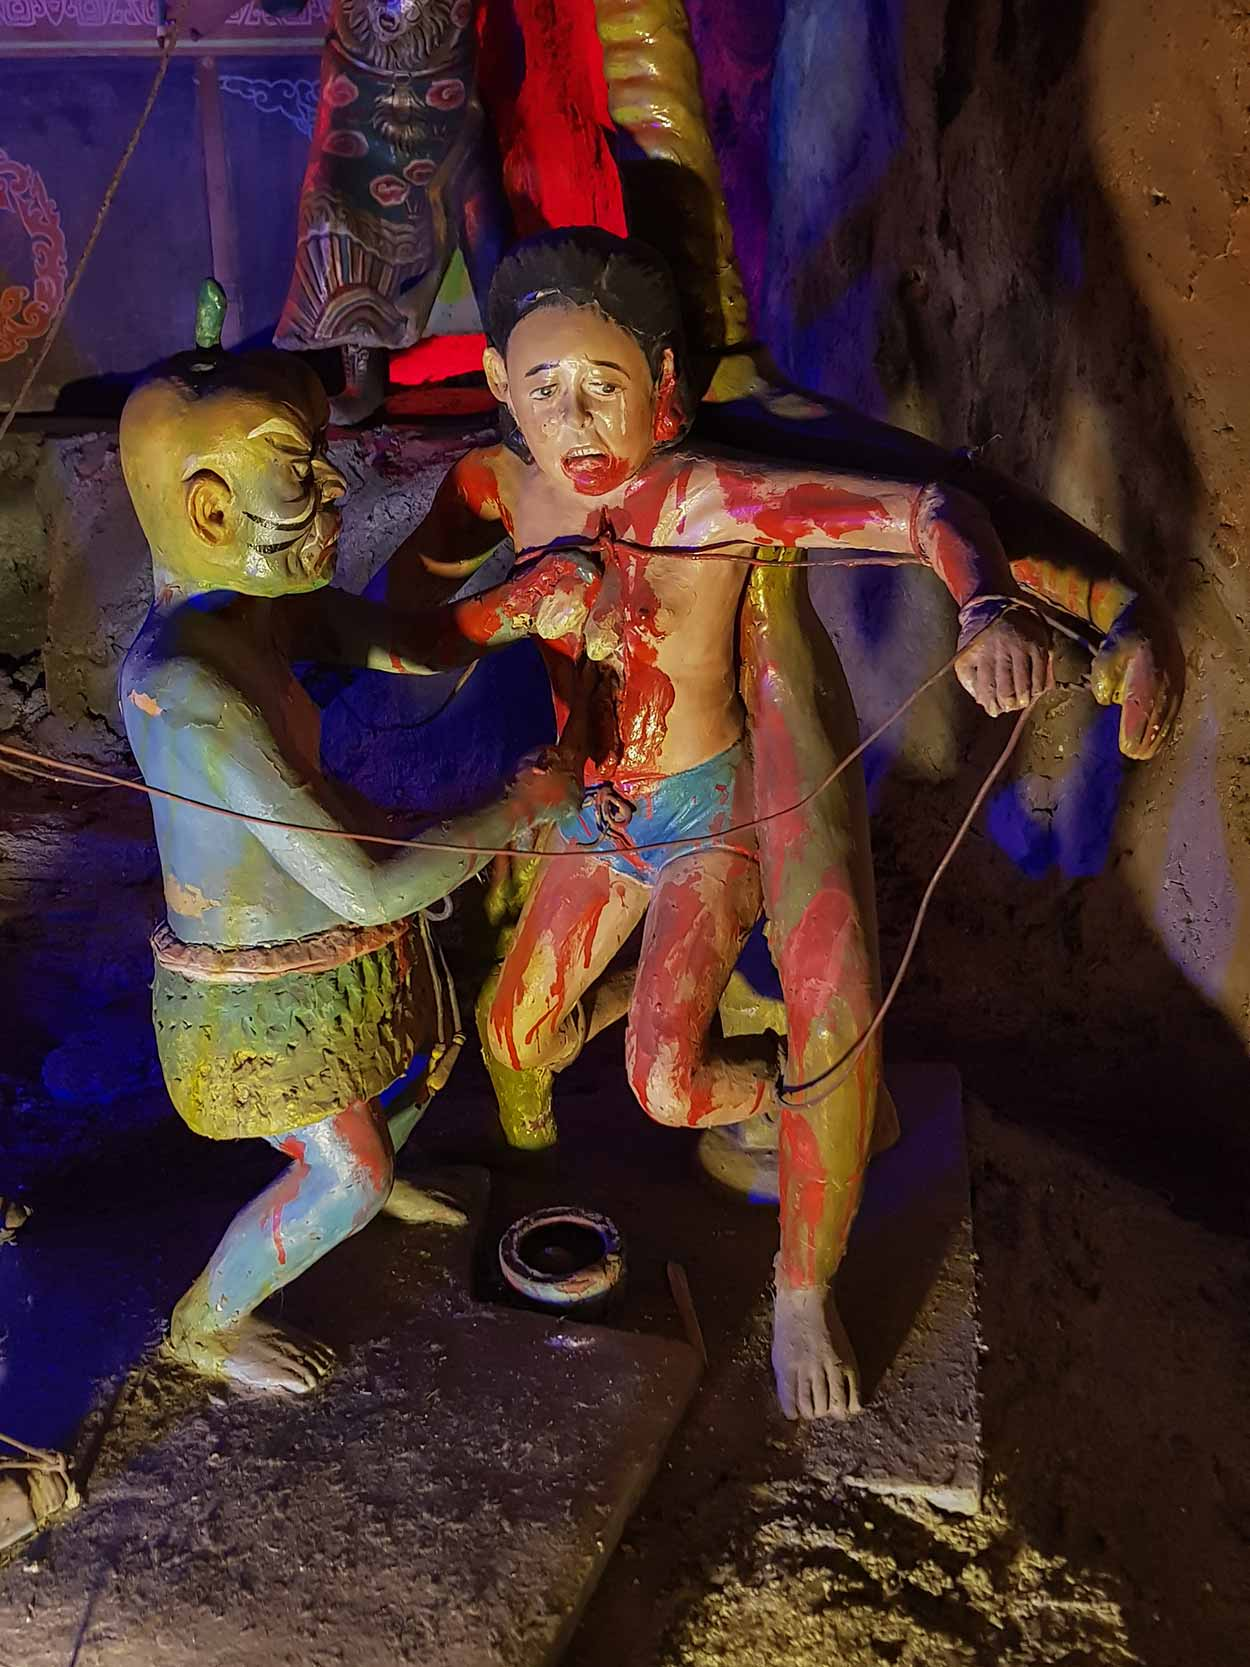 Sinners subjected to gruesome tortures within the Ten Courts of Hell, Haw Par Villa, Singapore